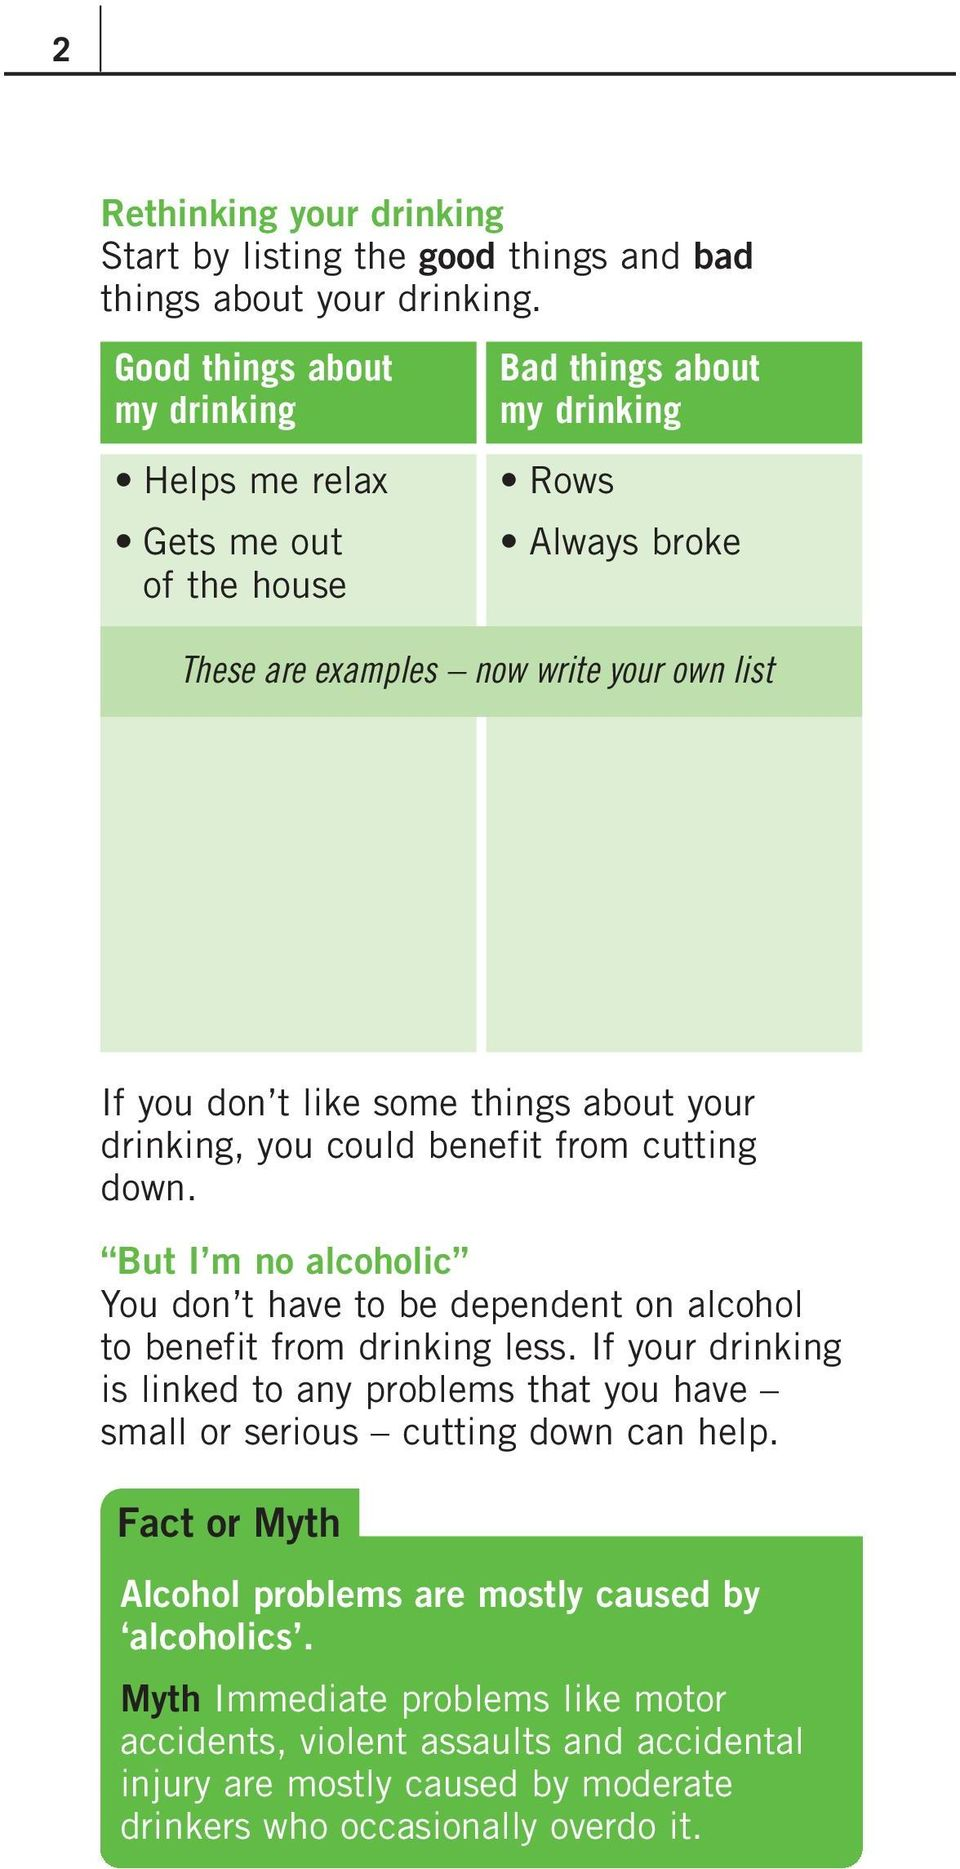 things about your drinking, you could benefit from cutting down. But I m no alcoholic You don t have to be dependent on alcohol to benefit from drinking less.